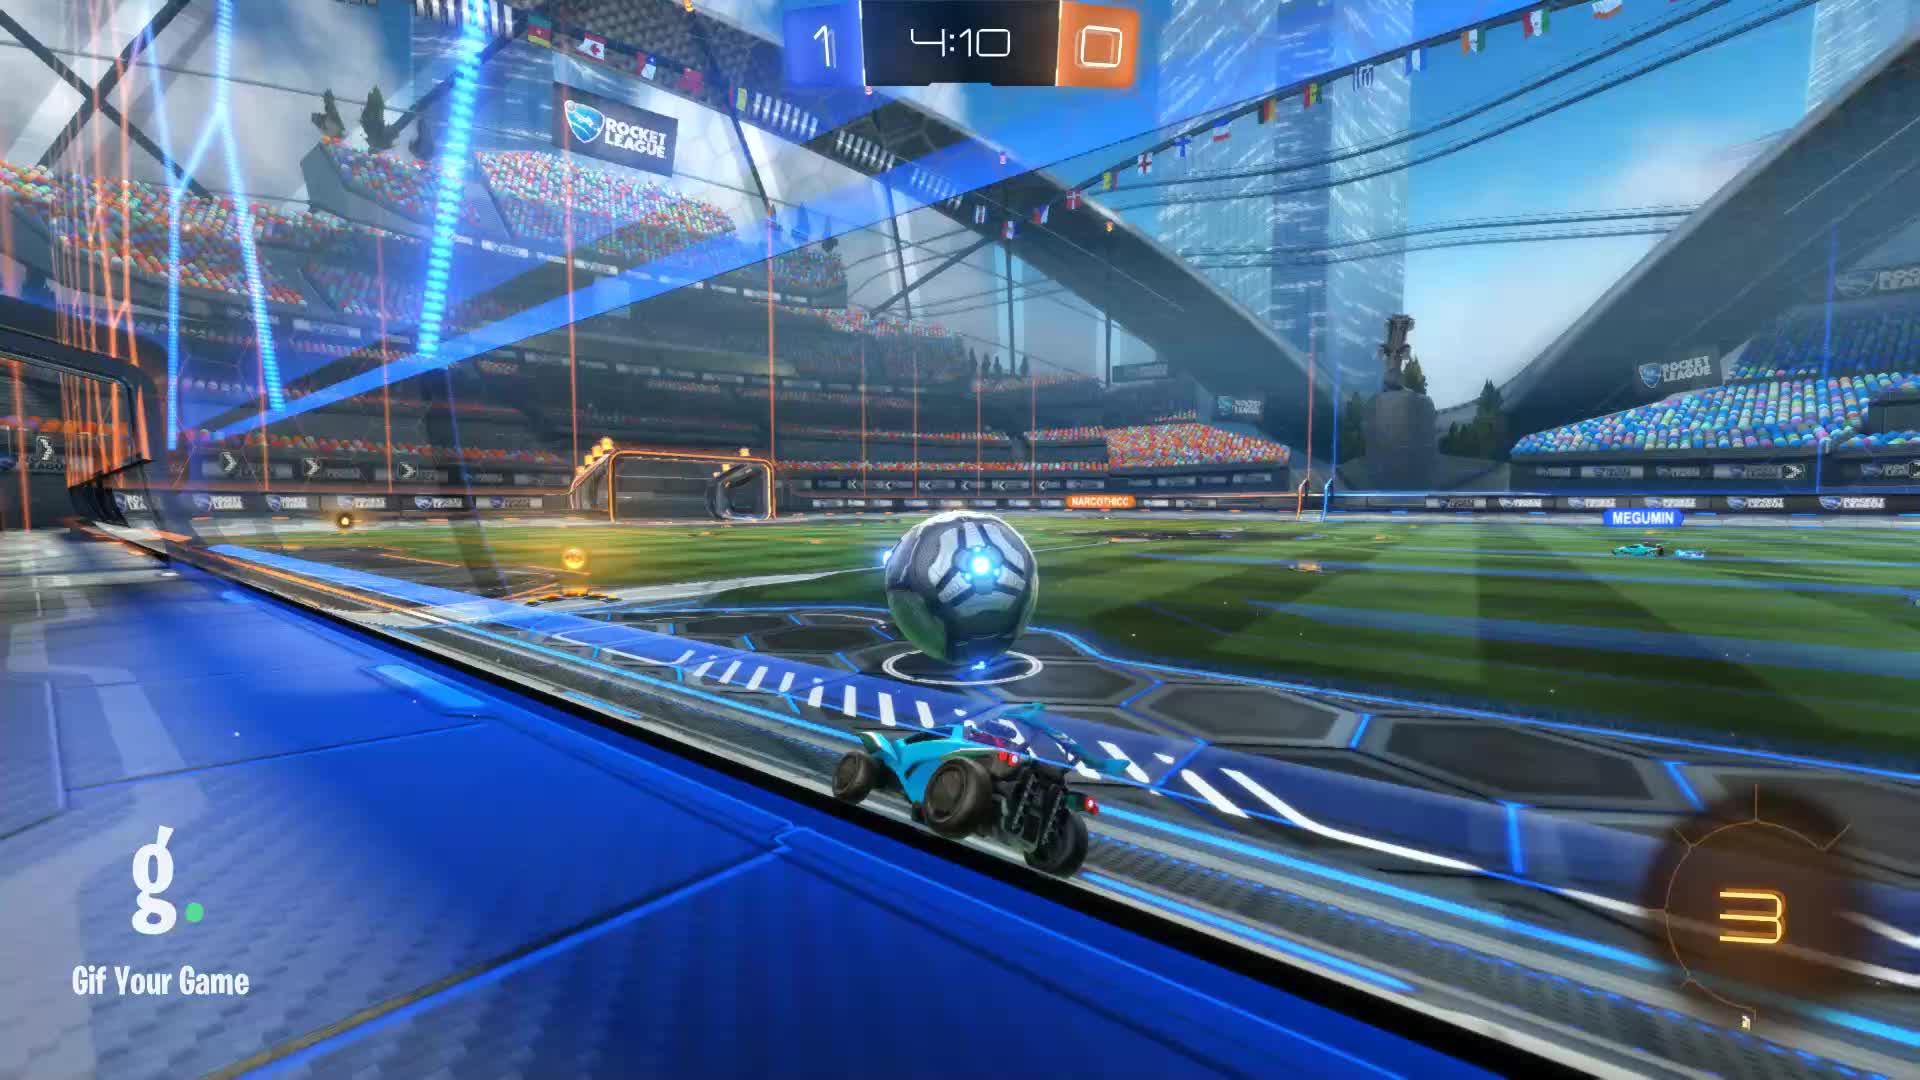 Gif Your Game, GifYourGame, Rocket League, RocketLeague, [Panthers] Absol, Assist 1: [Panthers] Absol GIFs